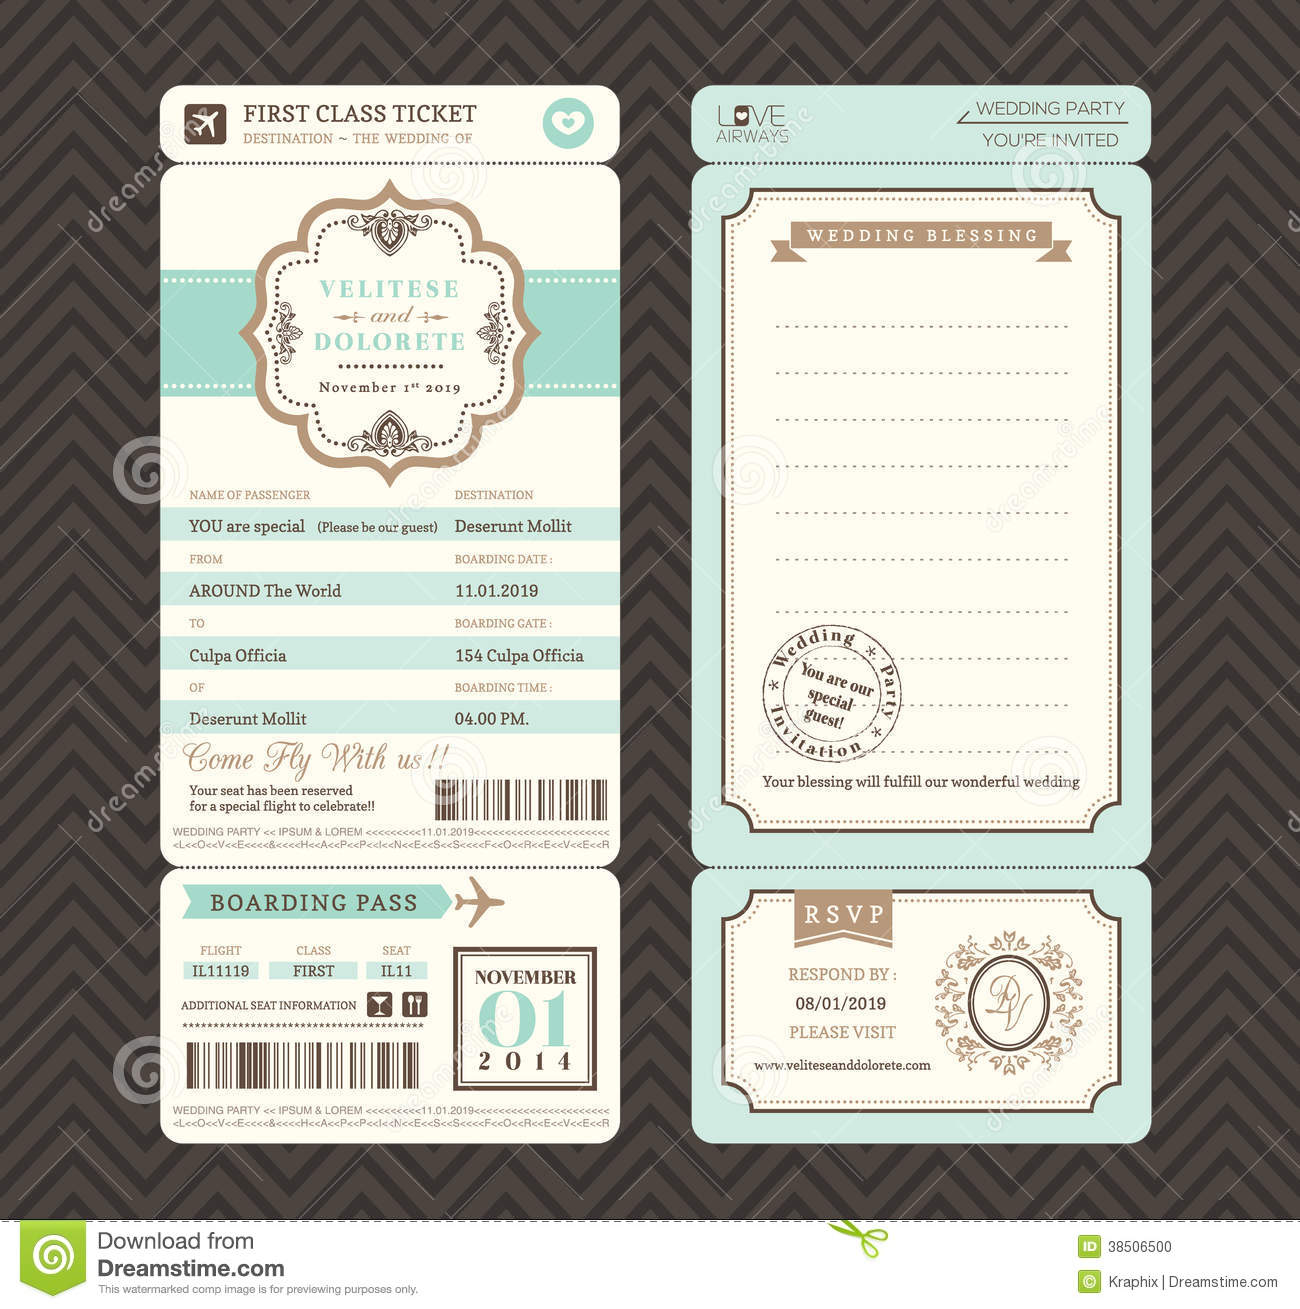 royalty free stock photo download vintage style boarding pass ticket wedding invitation - Movie Ticket Wedding Invitations